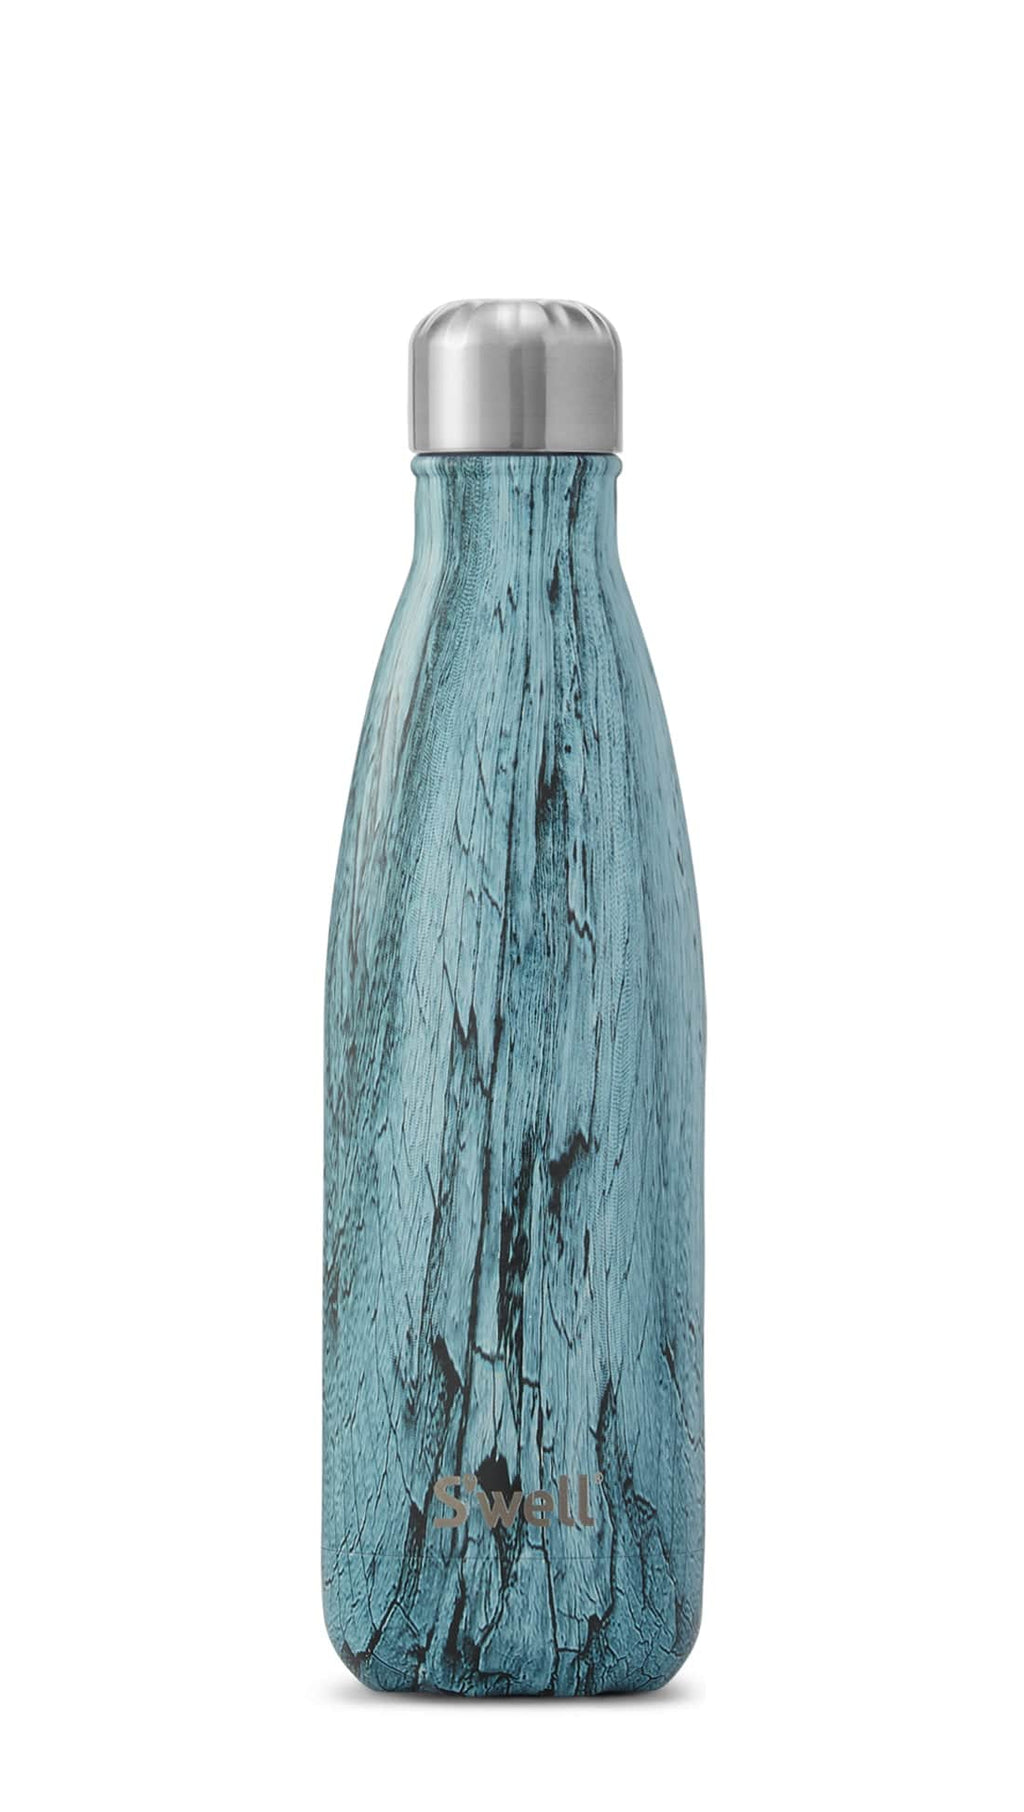 S'well Teal Wood Bottle